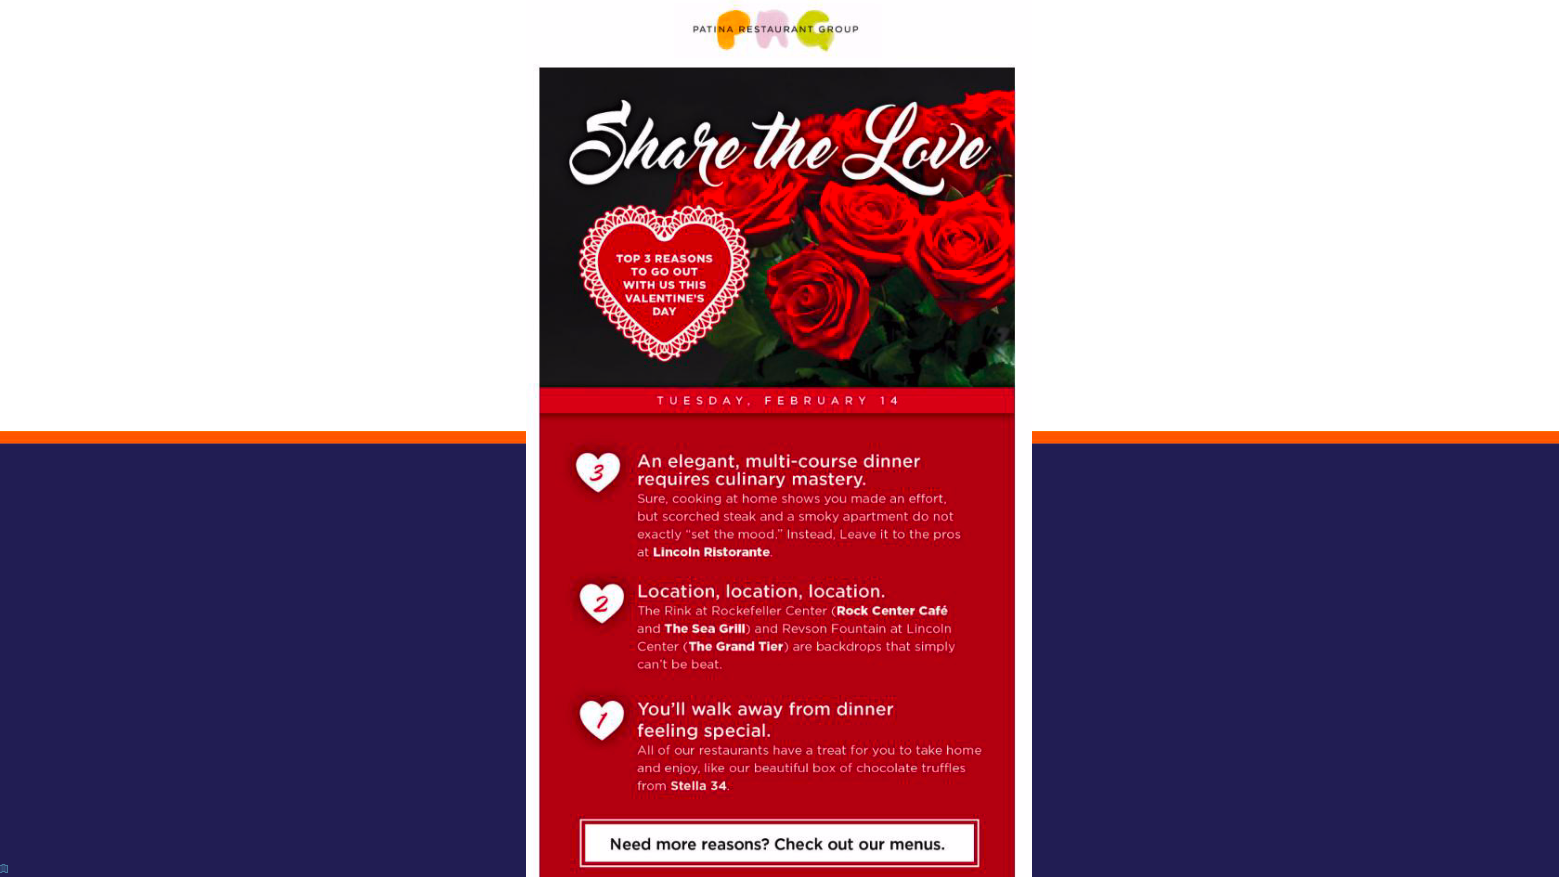 Patina Restaurant Group uses data and email marketing to invite only big spenders to a Valentine's Day event